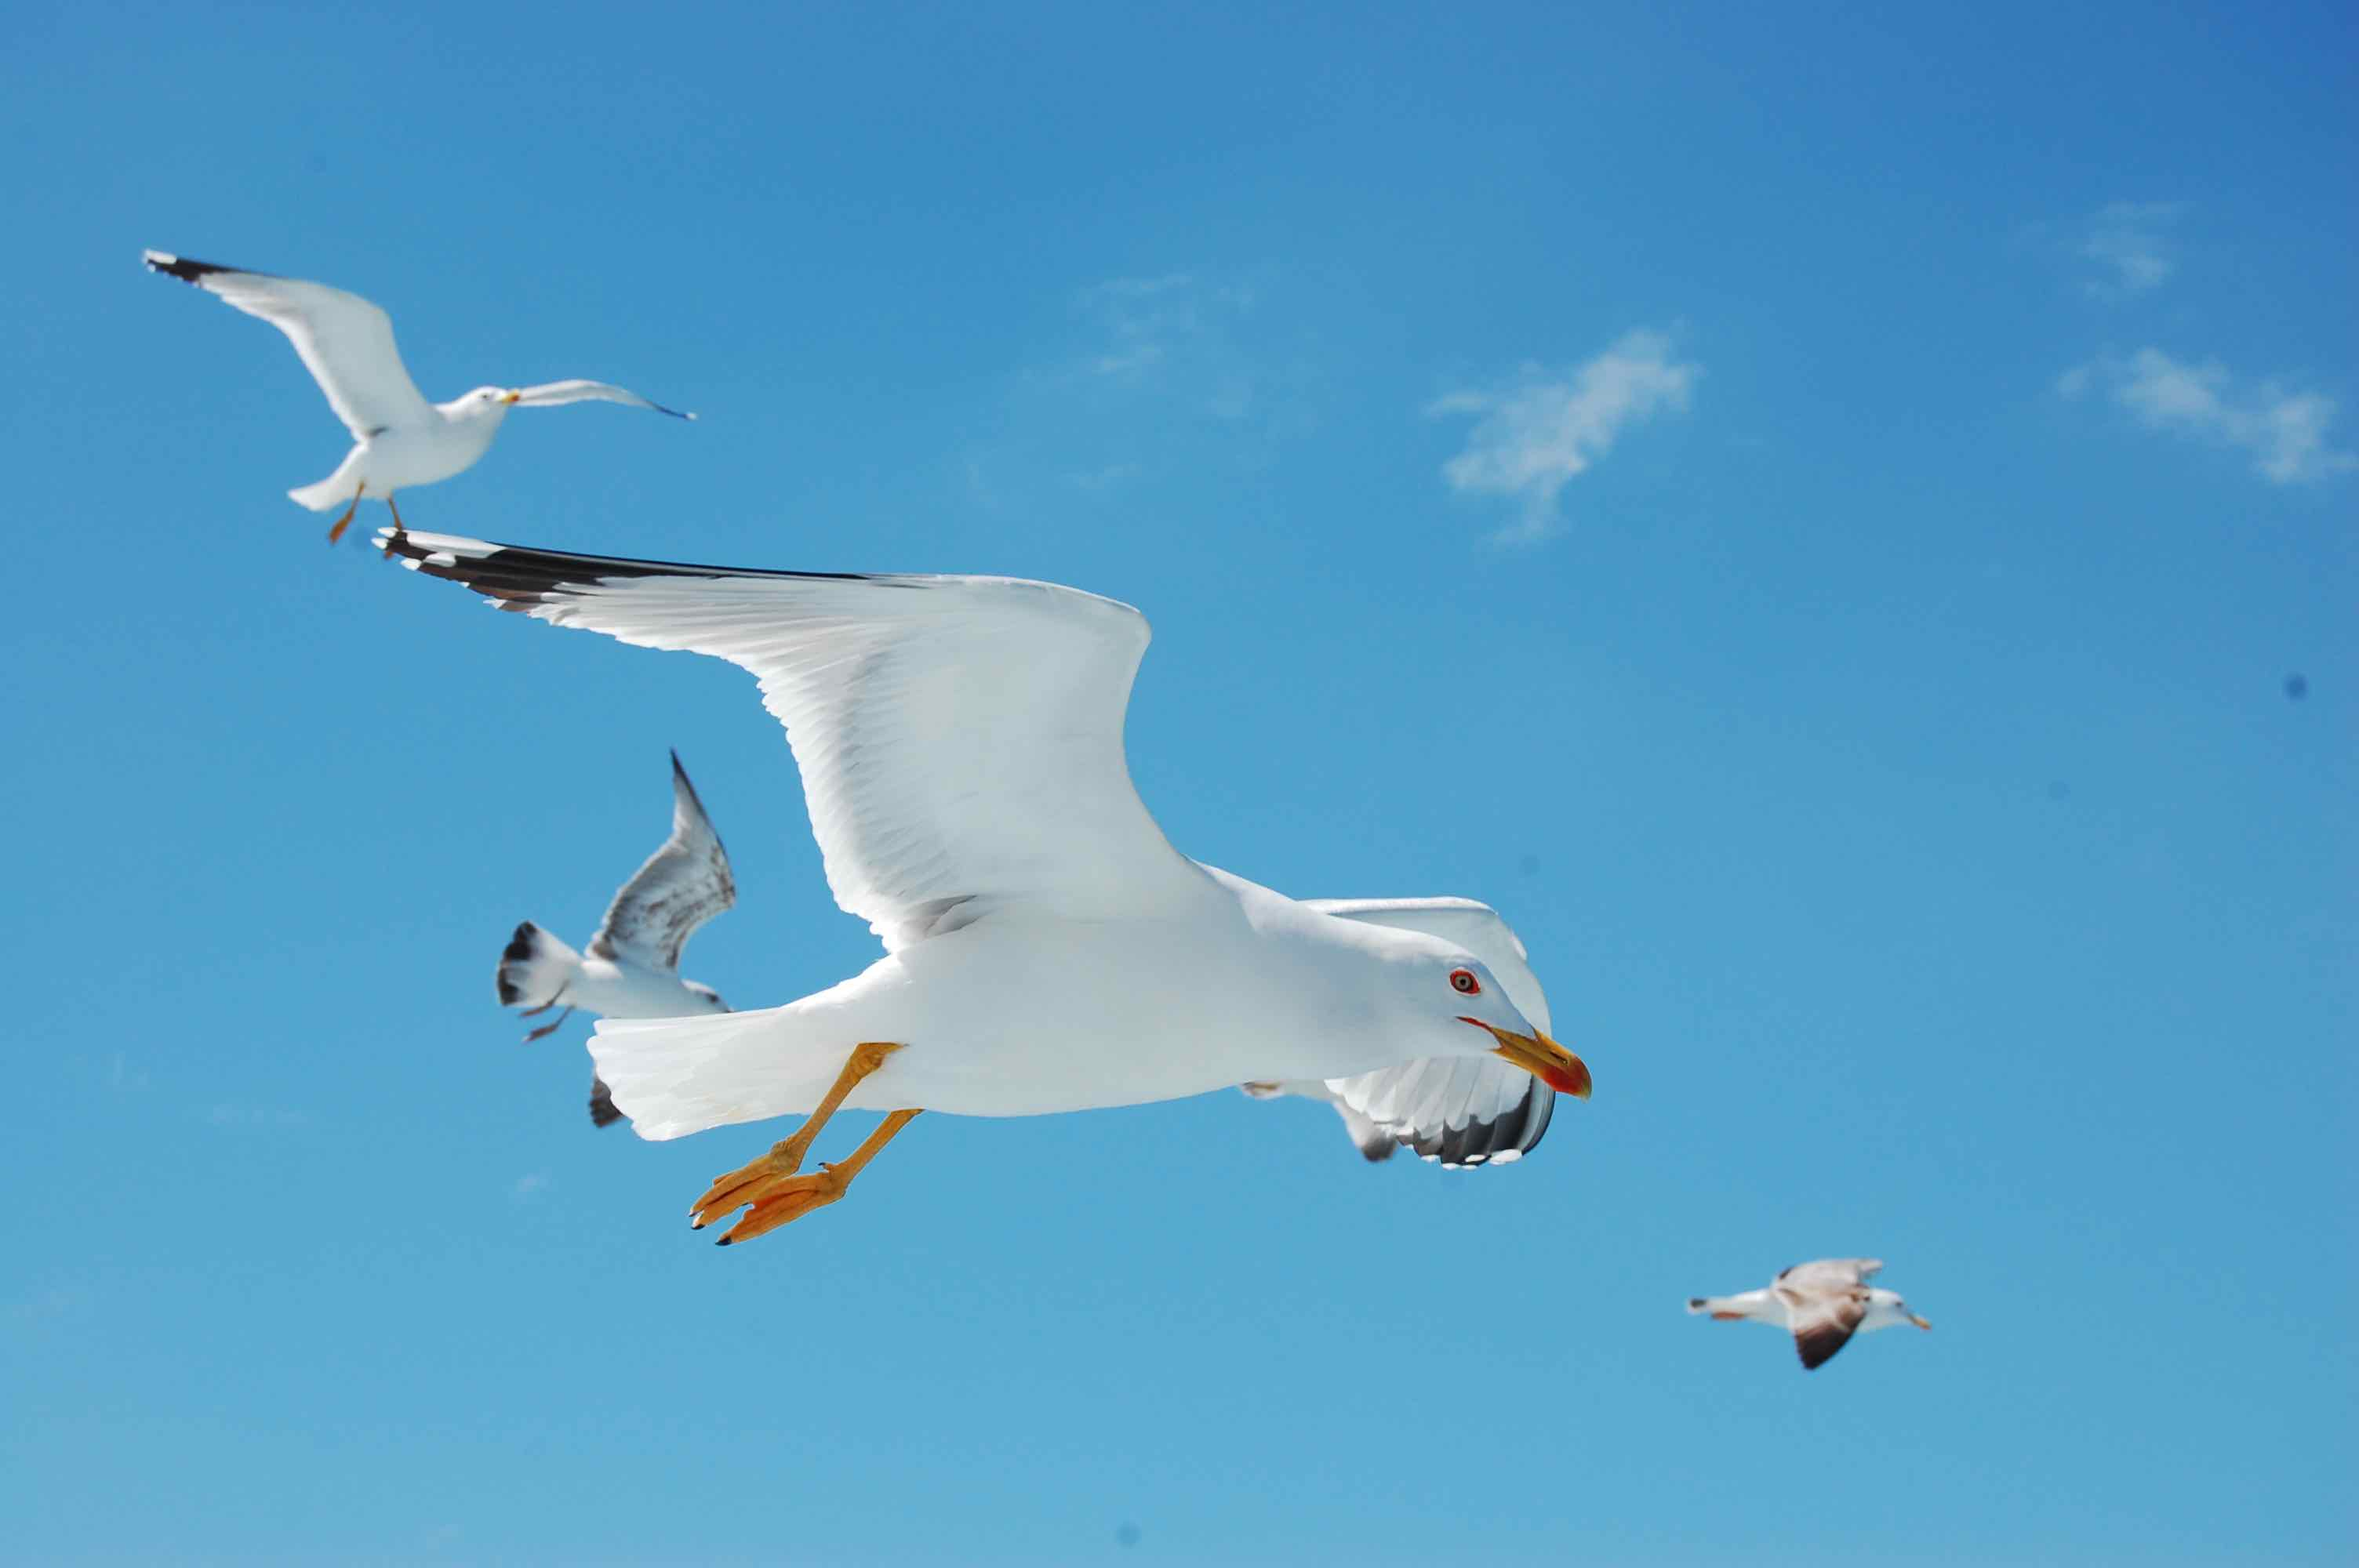 close-up photo of seagulls against a blue sky